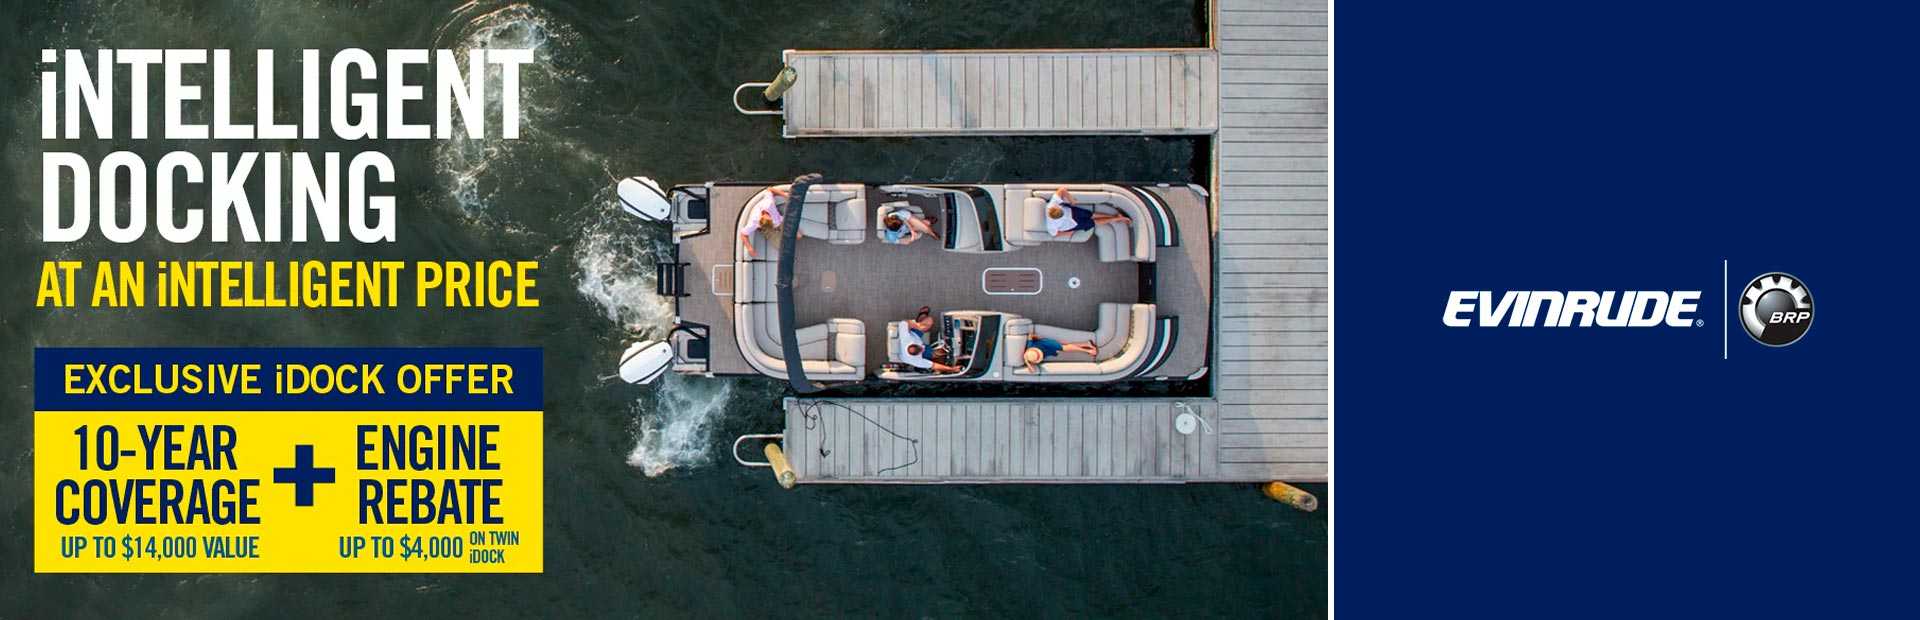 Evinrude: iNtelligent Docking at an iNtelligent Price